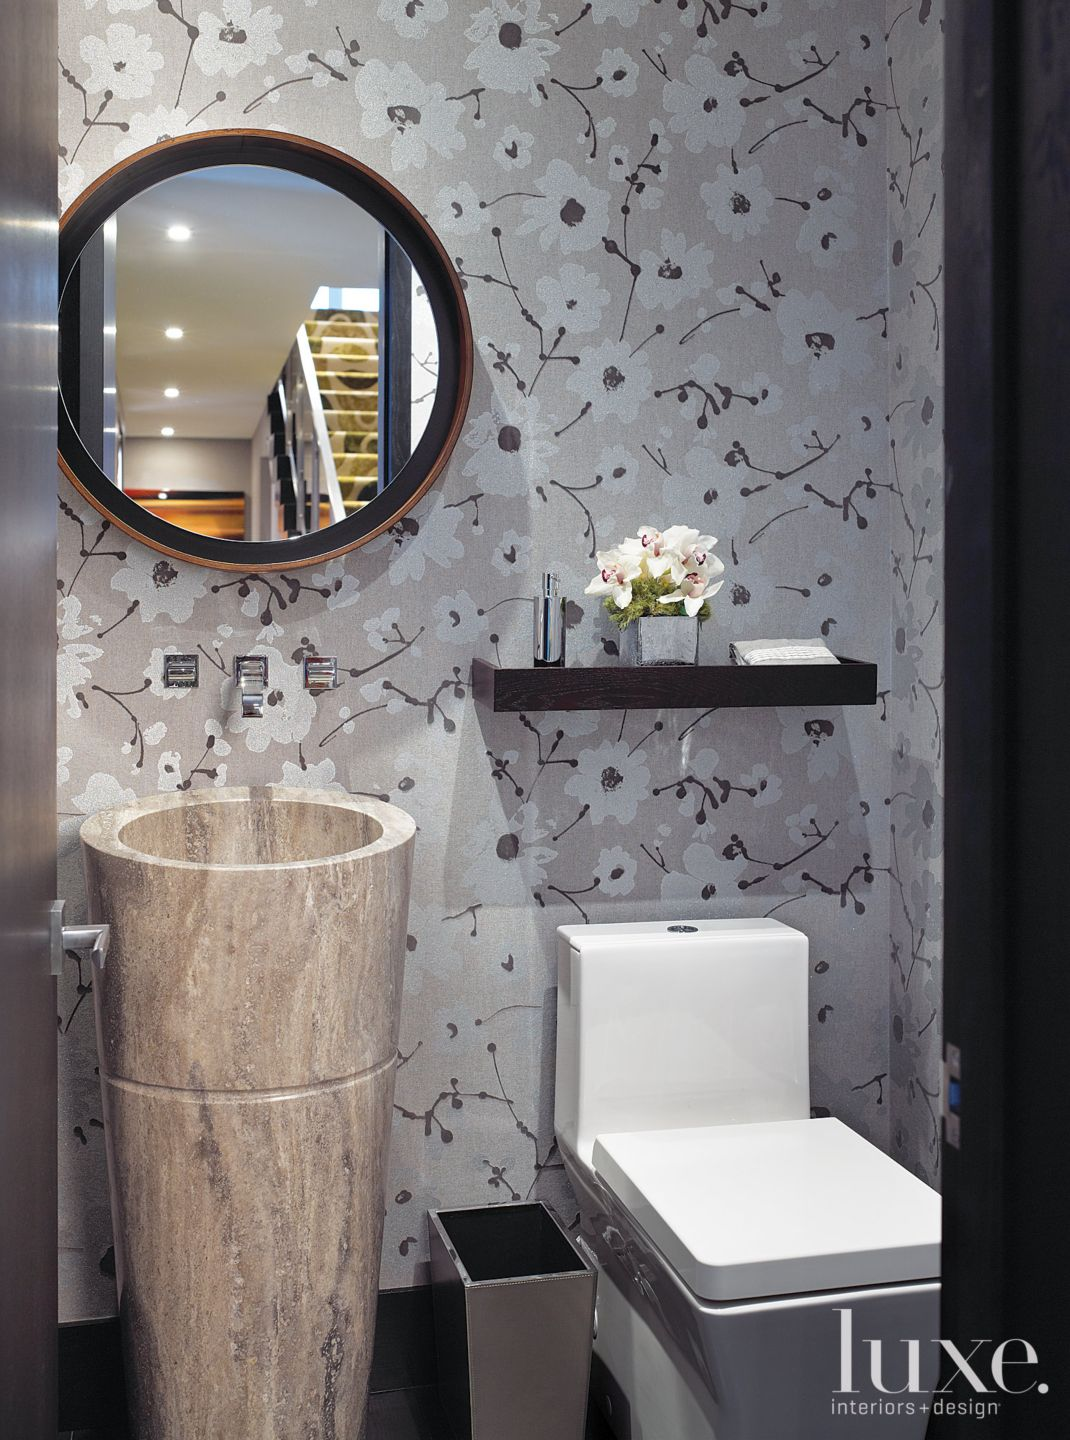 Square shaped toilet in powder room